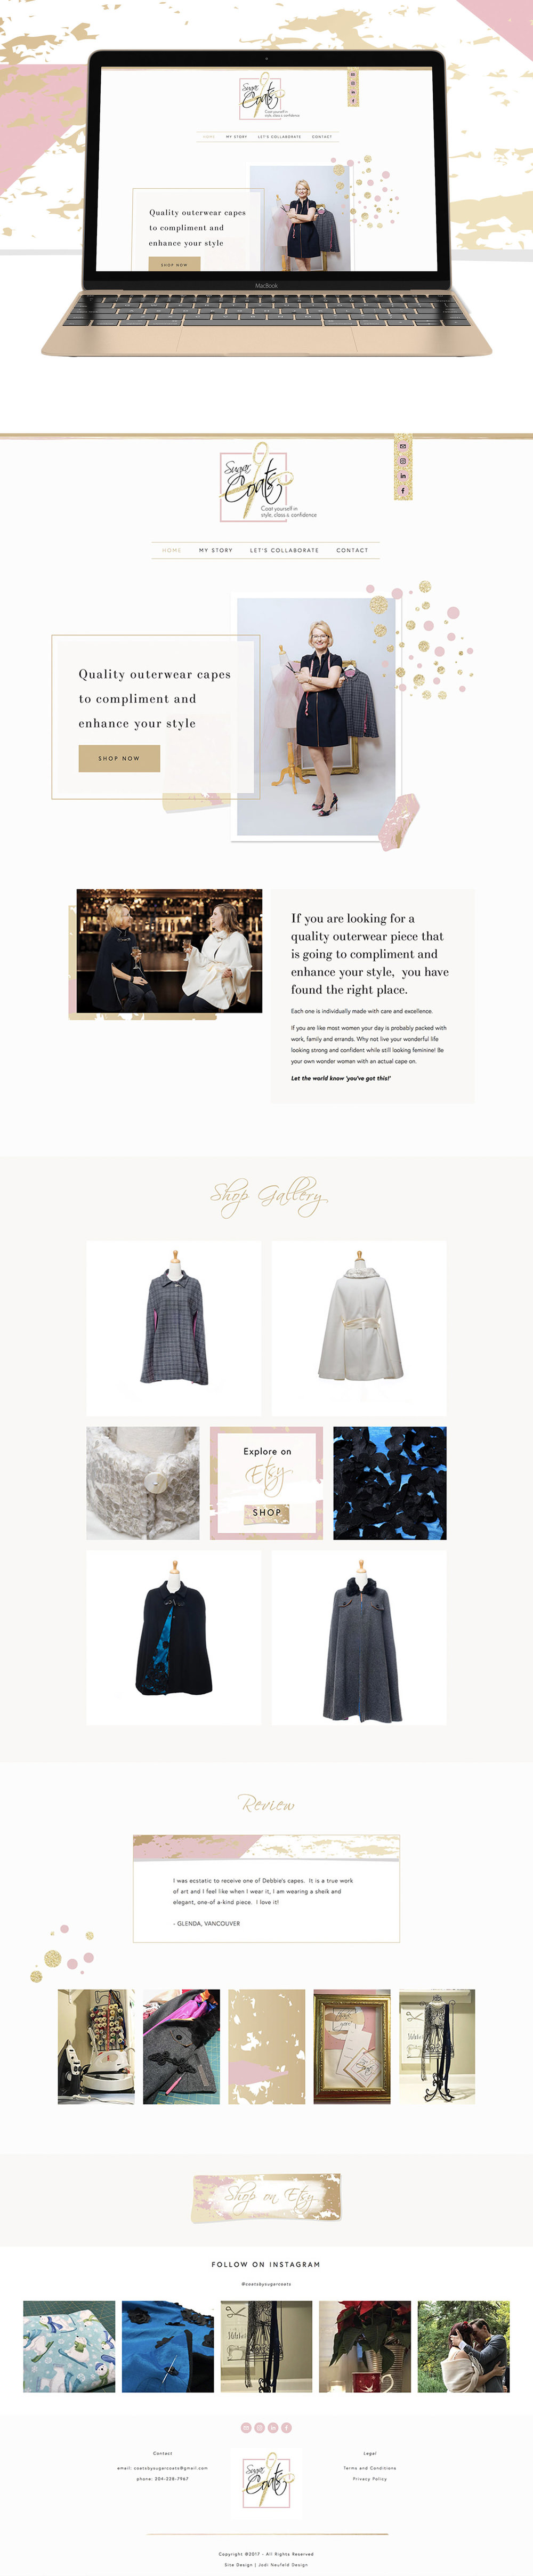 Sugar Coats home page website design | Squarespace website design for Etsy clothing seller by Jodi Neufeld Design